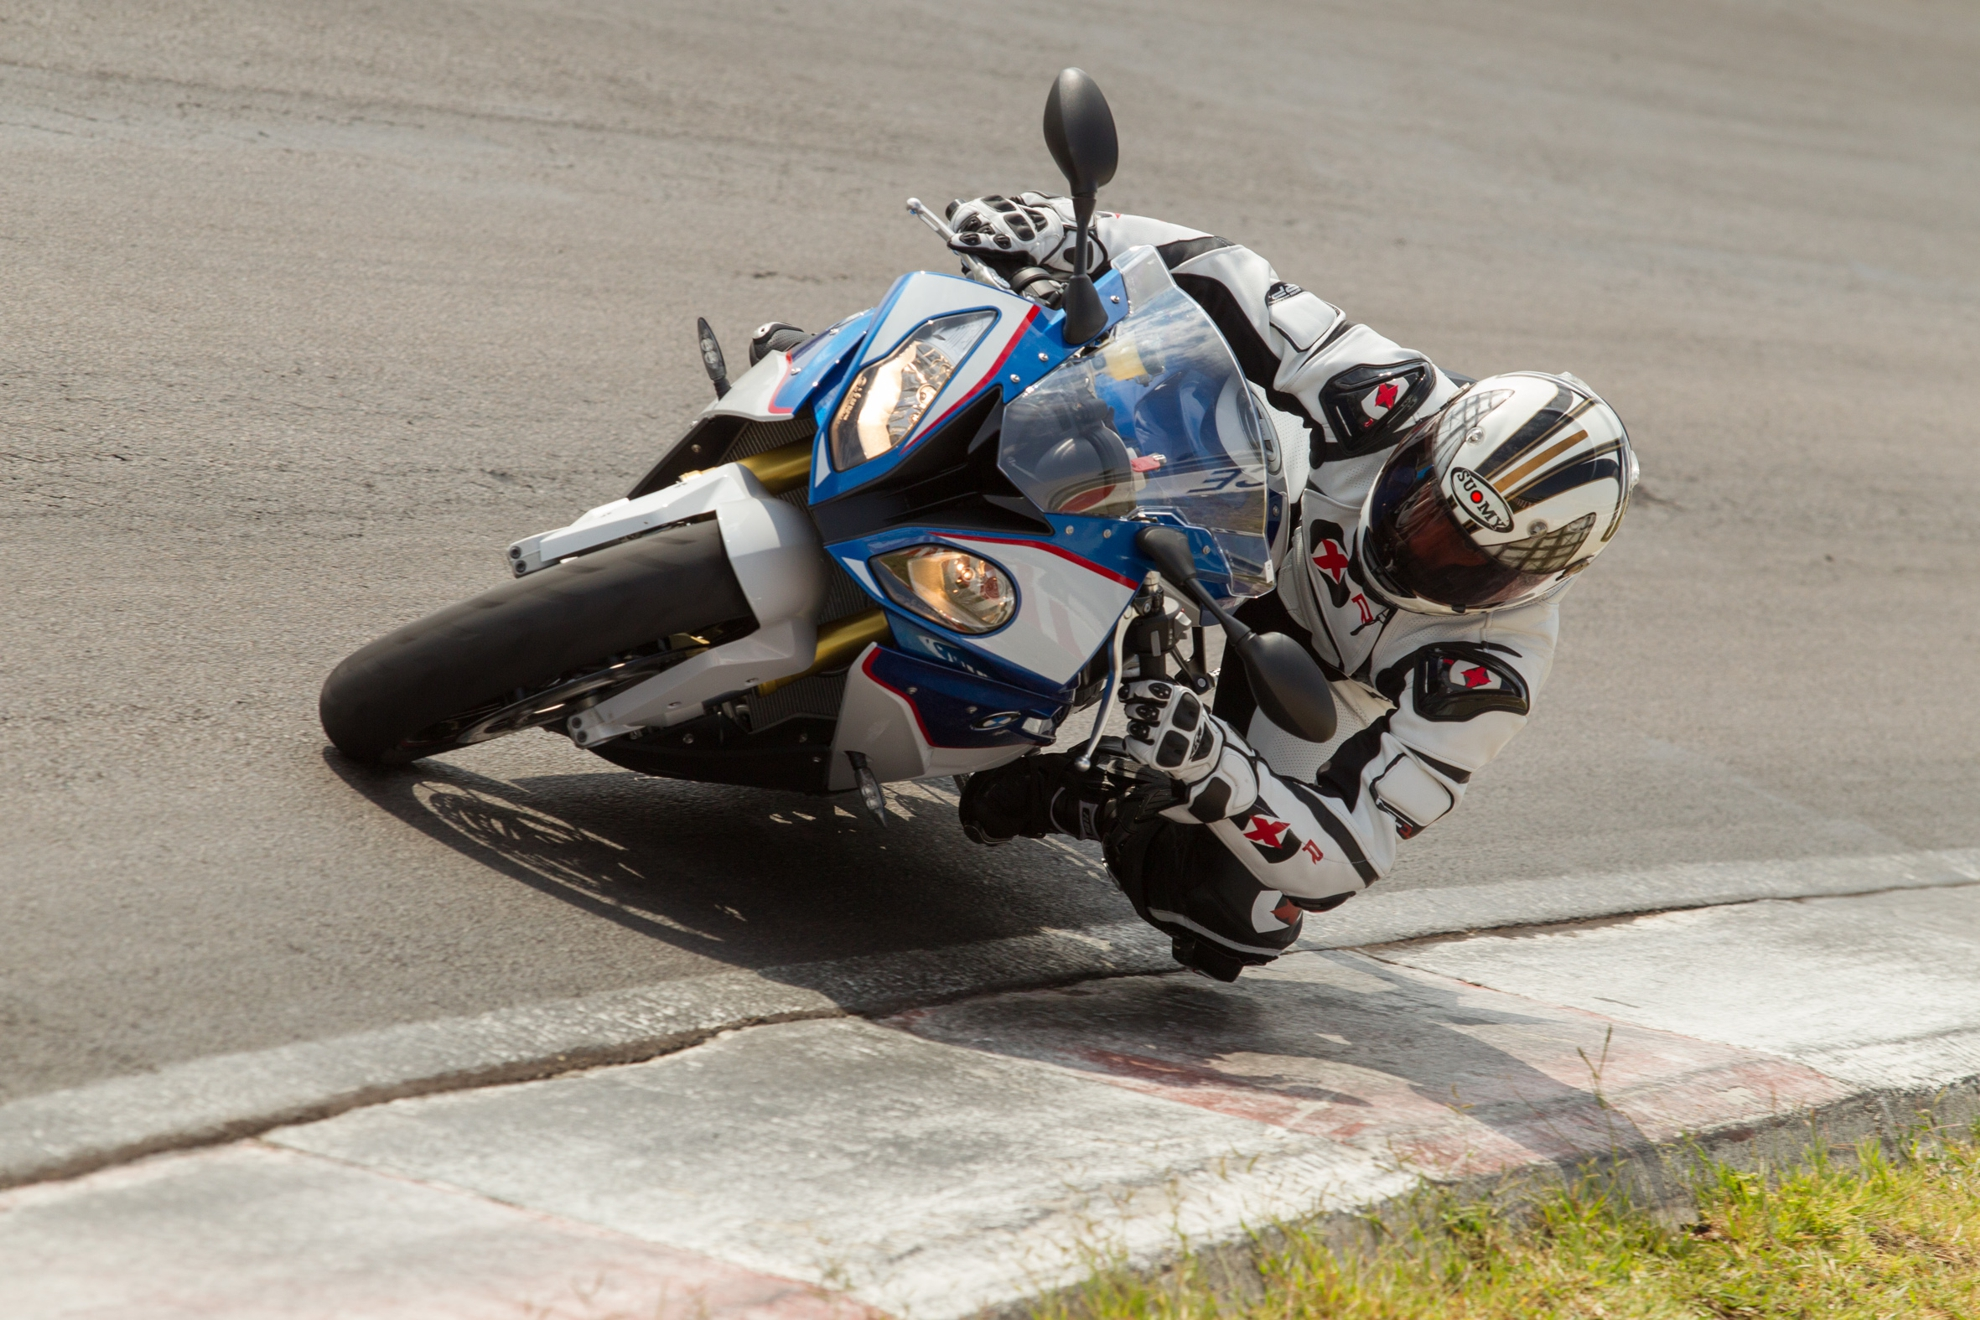 BMW-S-1000-RR-Motorcycle